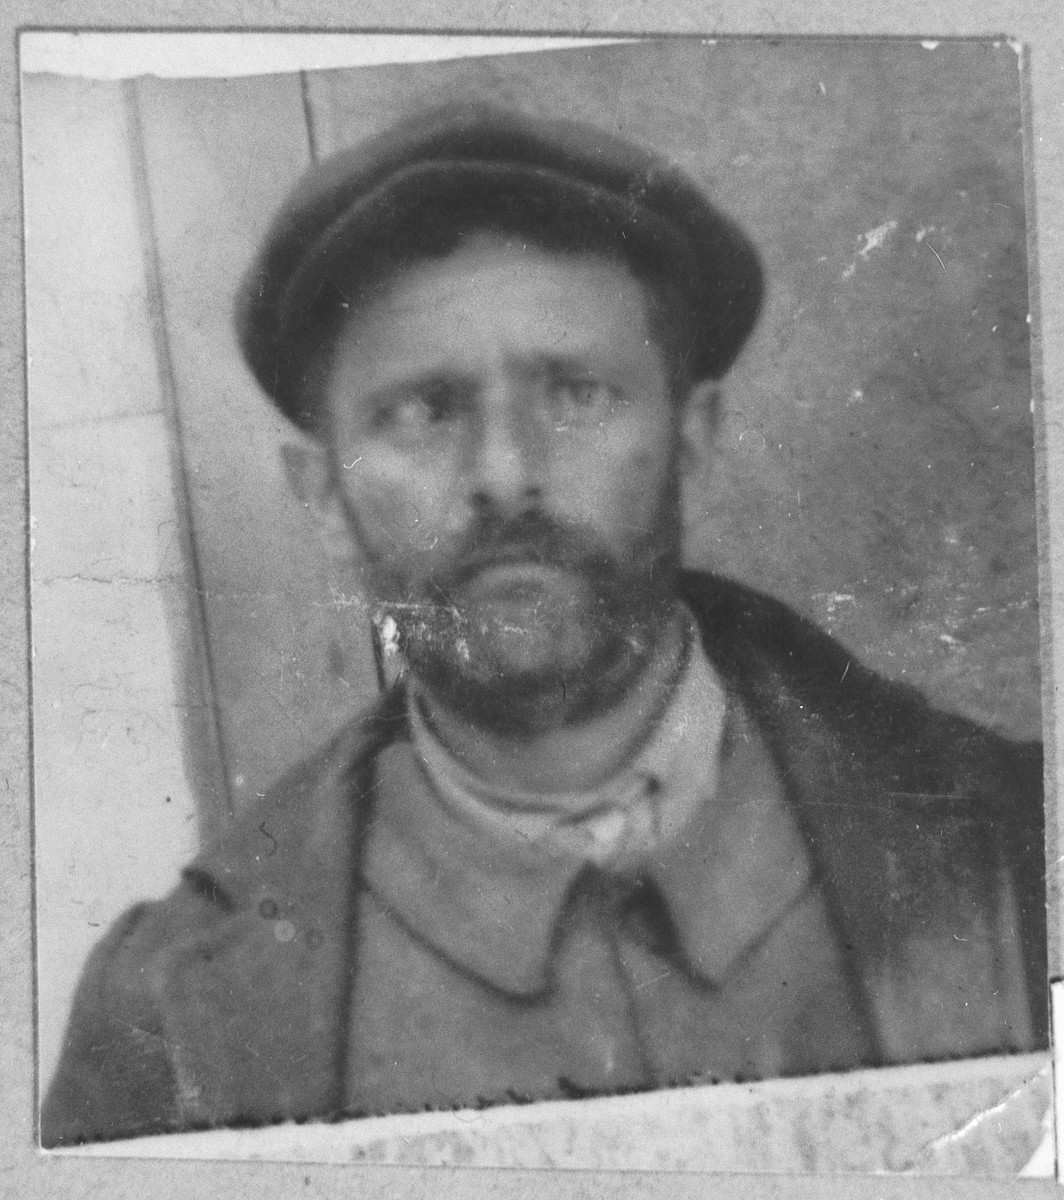 Portrait of Aron Albocher.  He lived at Karagoryeva 34 in Bitola.